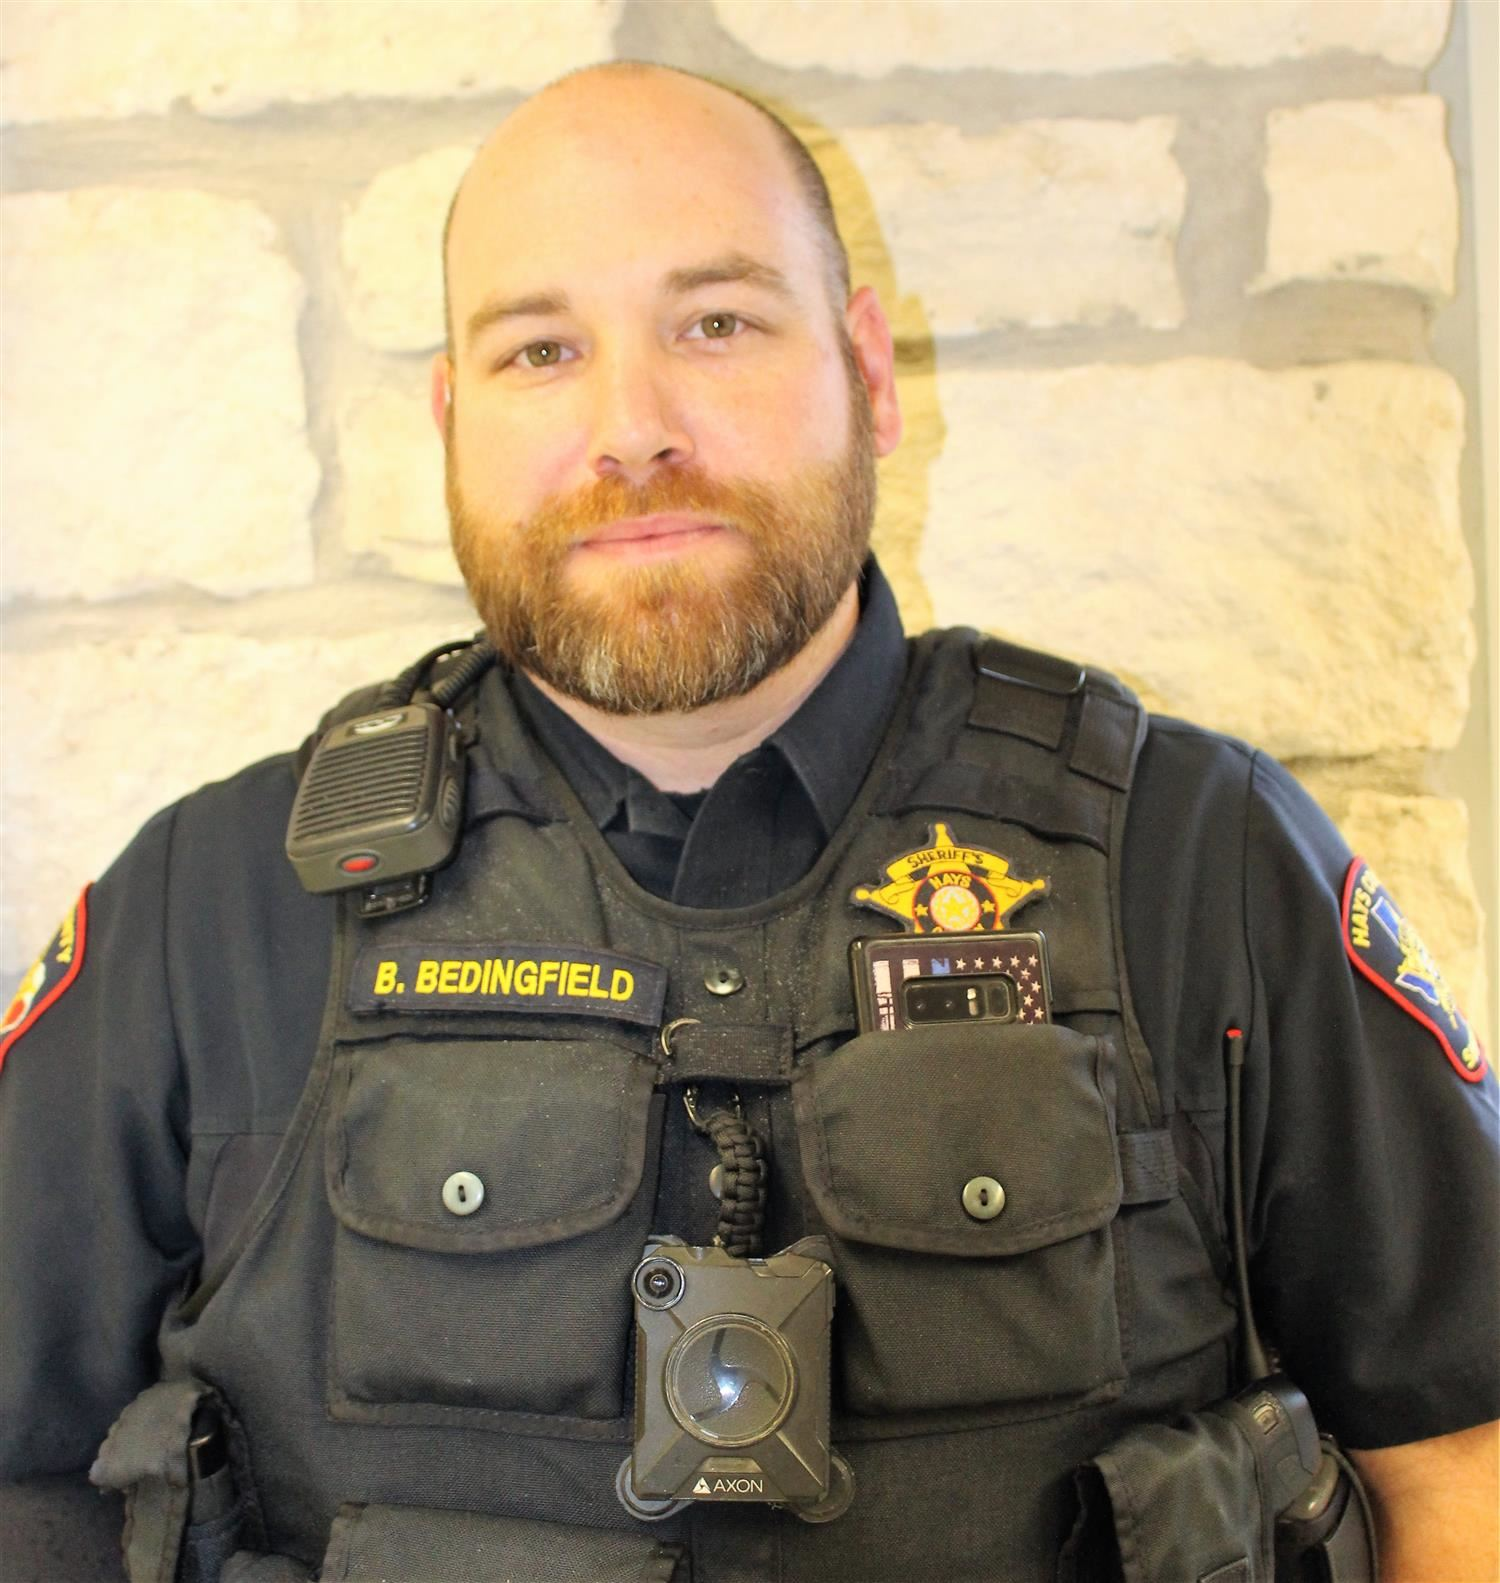 Brian Bedingfield, Junior High School Resource Officer